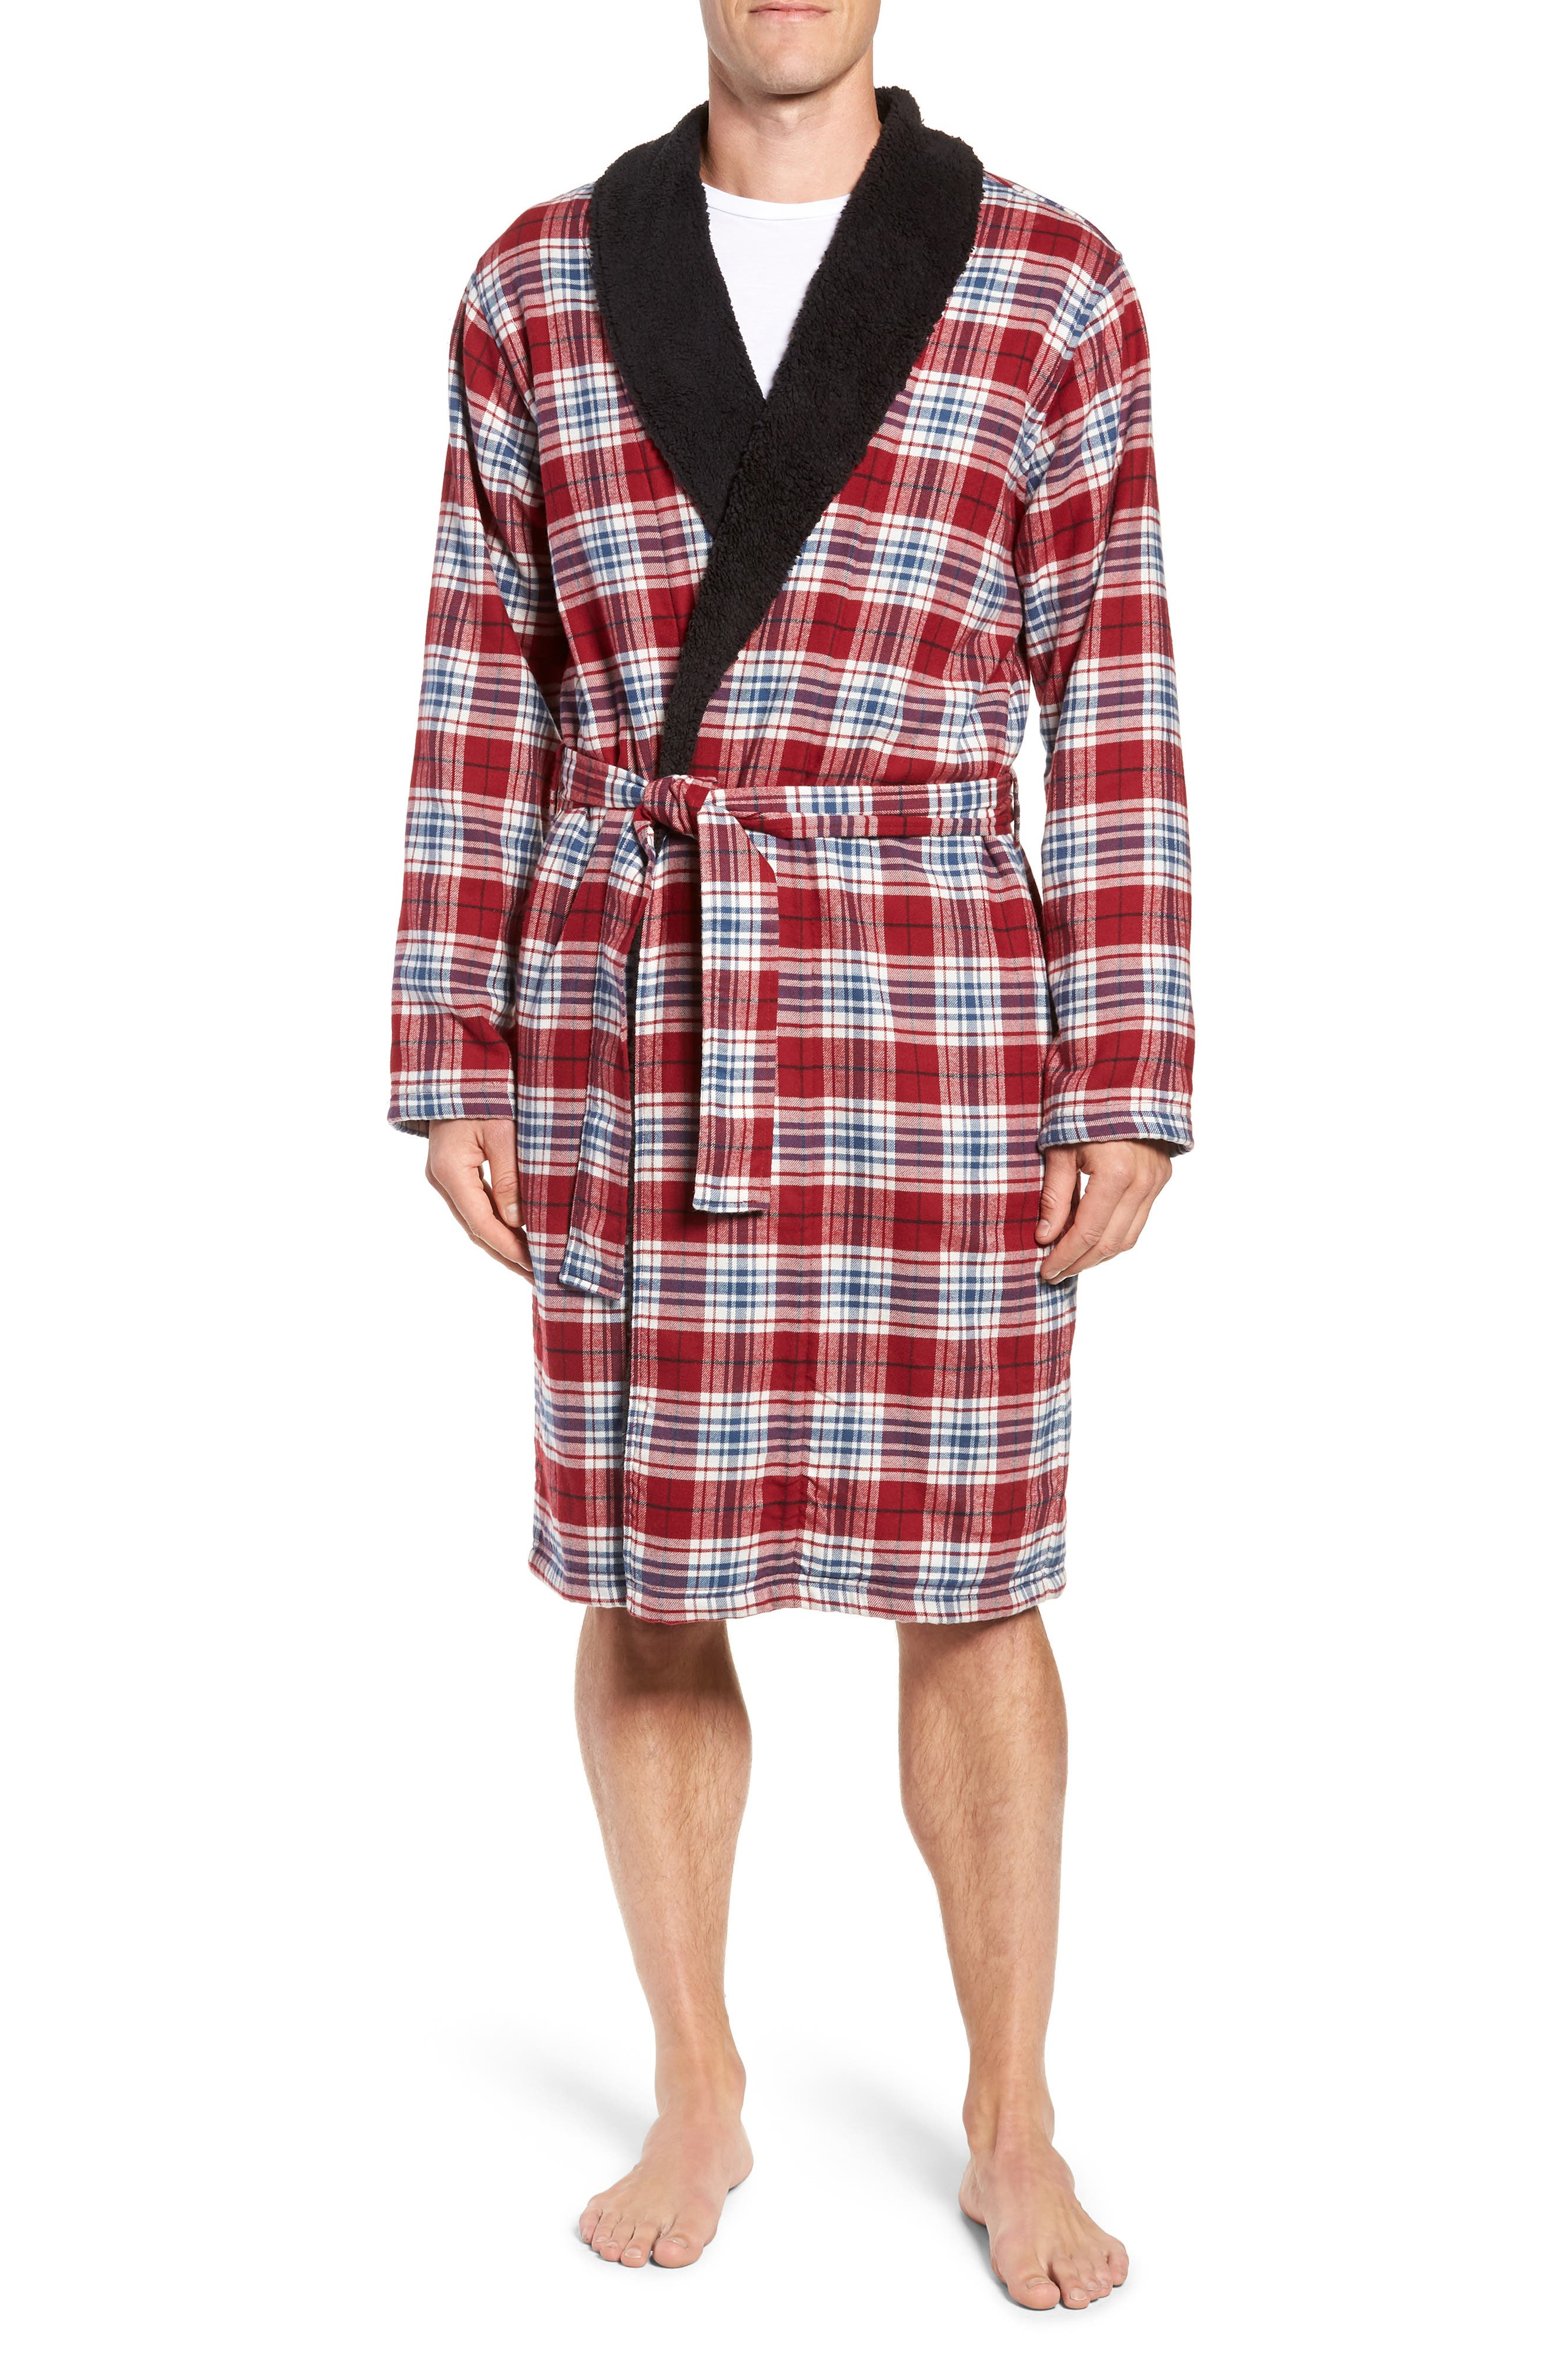 Men'S Kalib Sherpa-Lined Plaid Robe in Chili Pepper Plaid